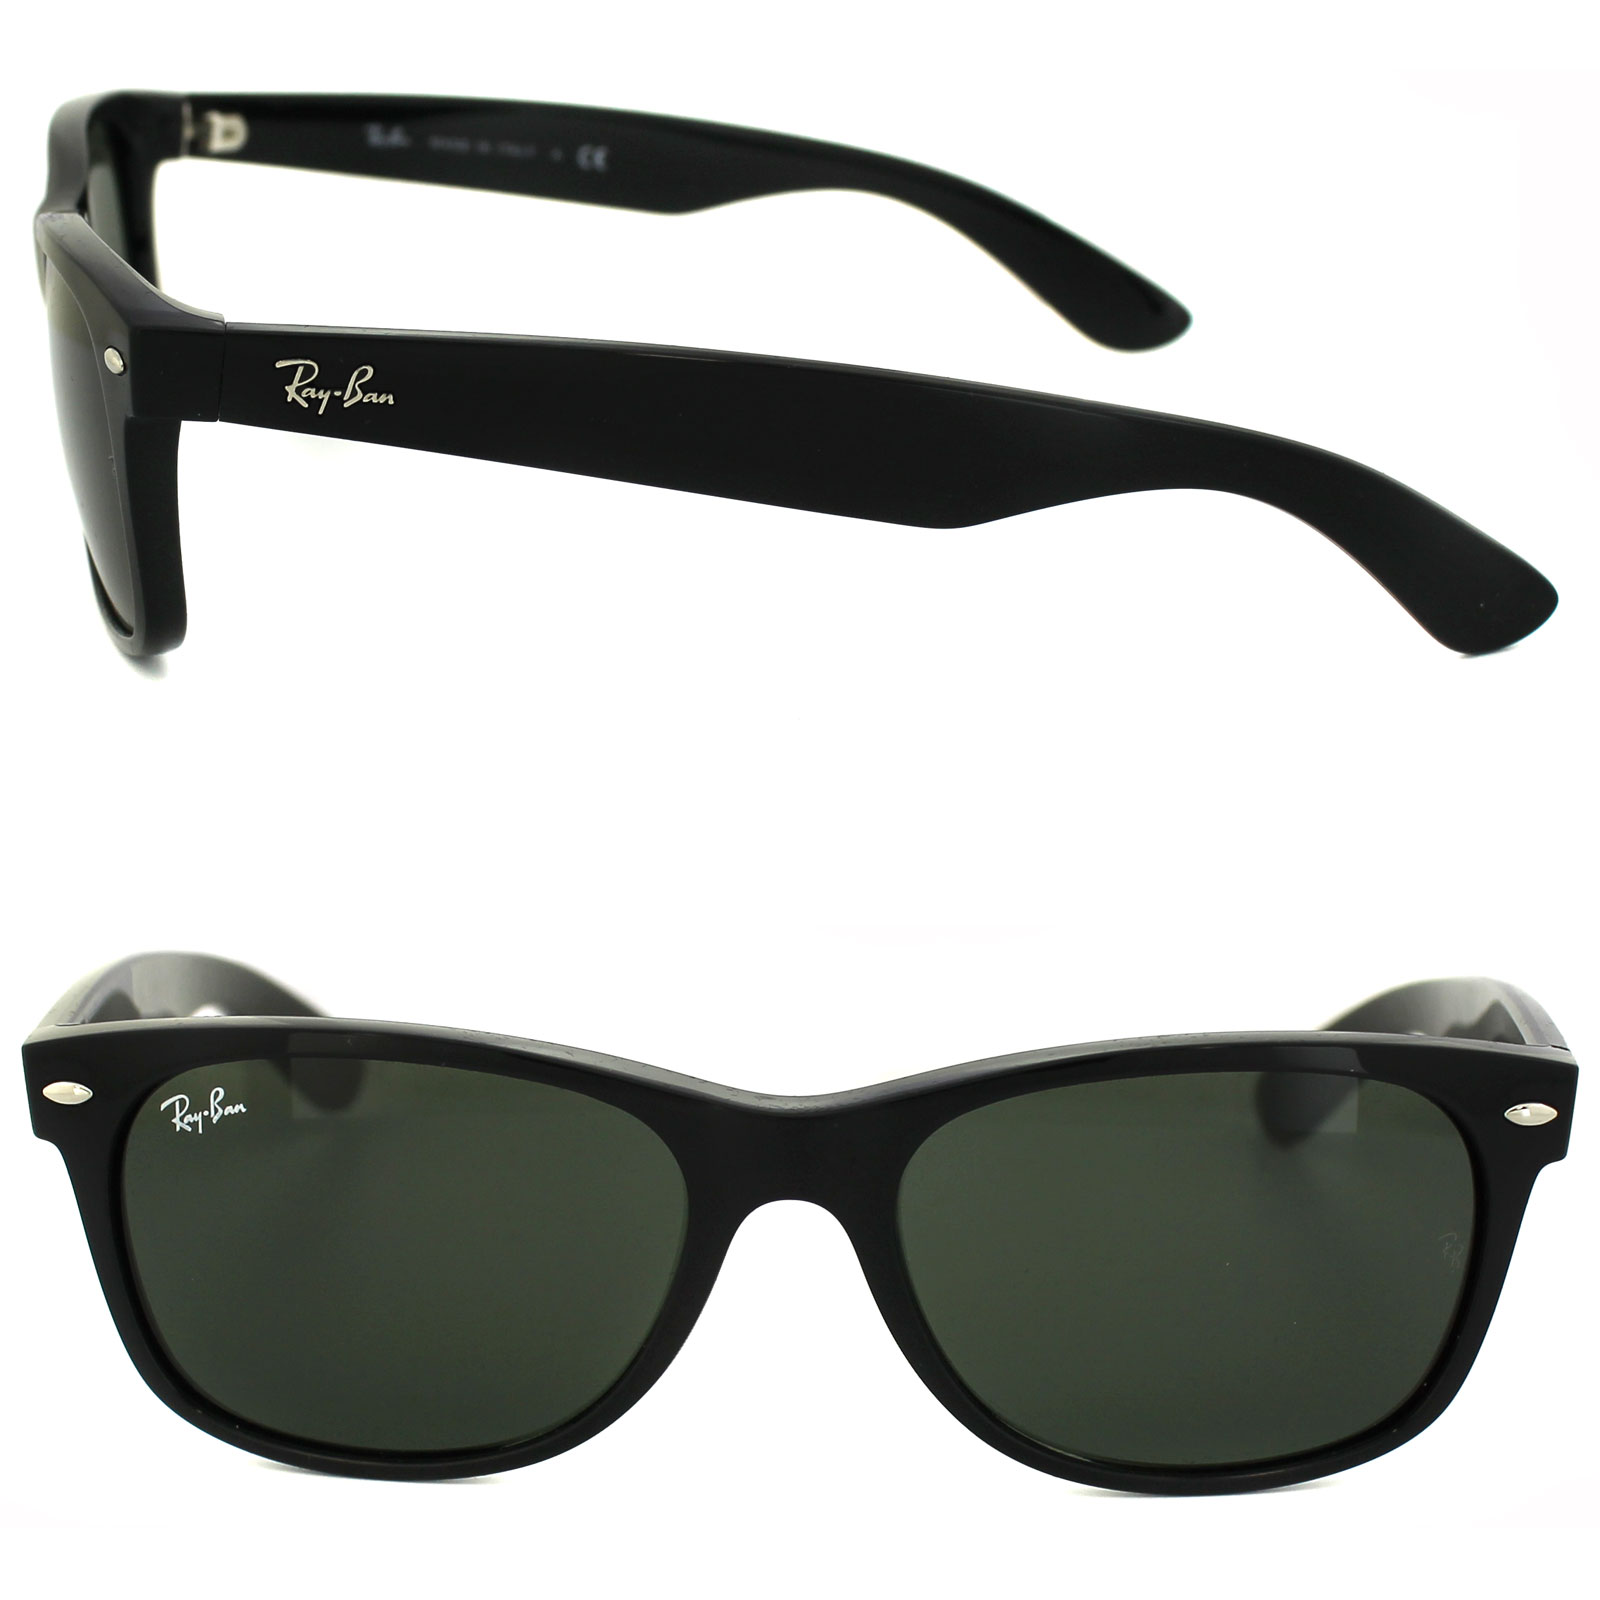 ray ban 2132 new wayfarer  Cheap Ray-Ban New Wayfarer 2132 Sunglasses - Discounted Sunglasses